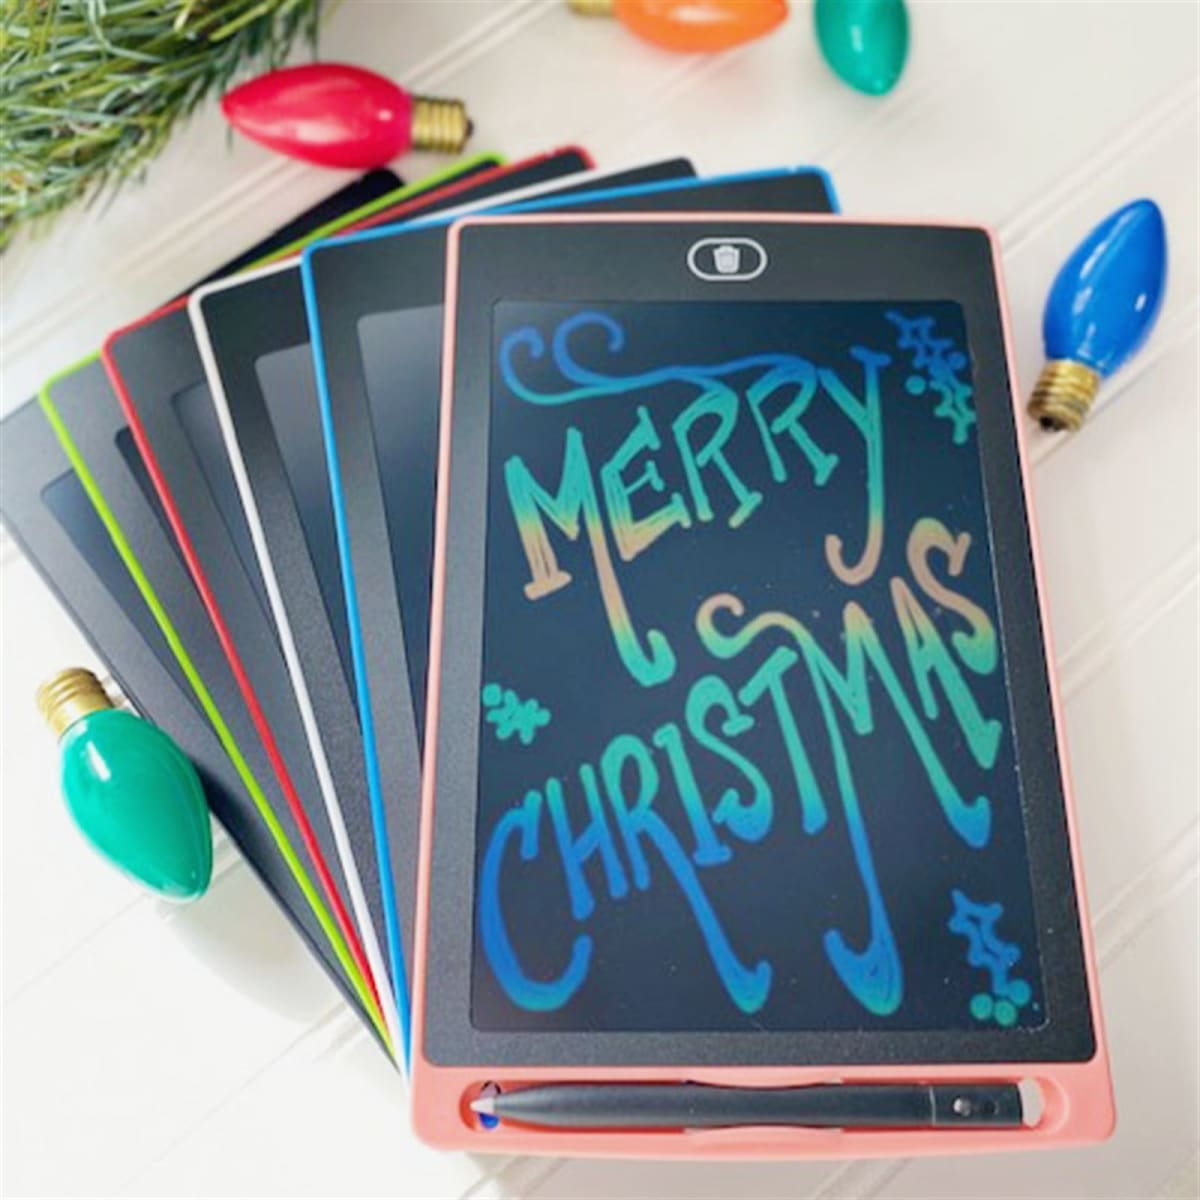 Color LCD Drawing Tablet